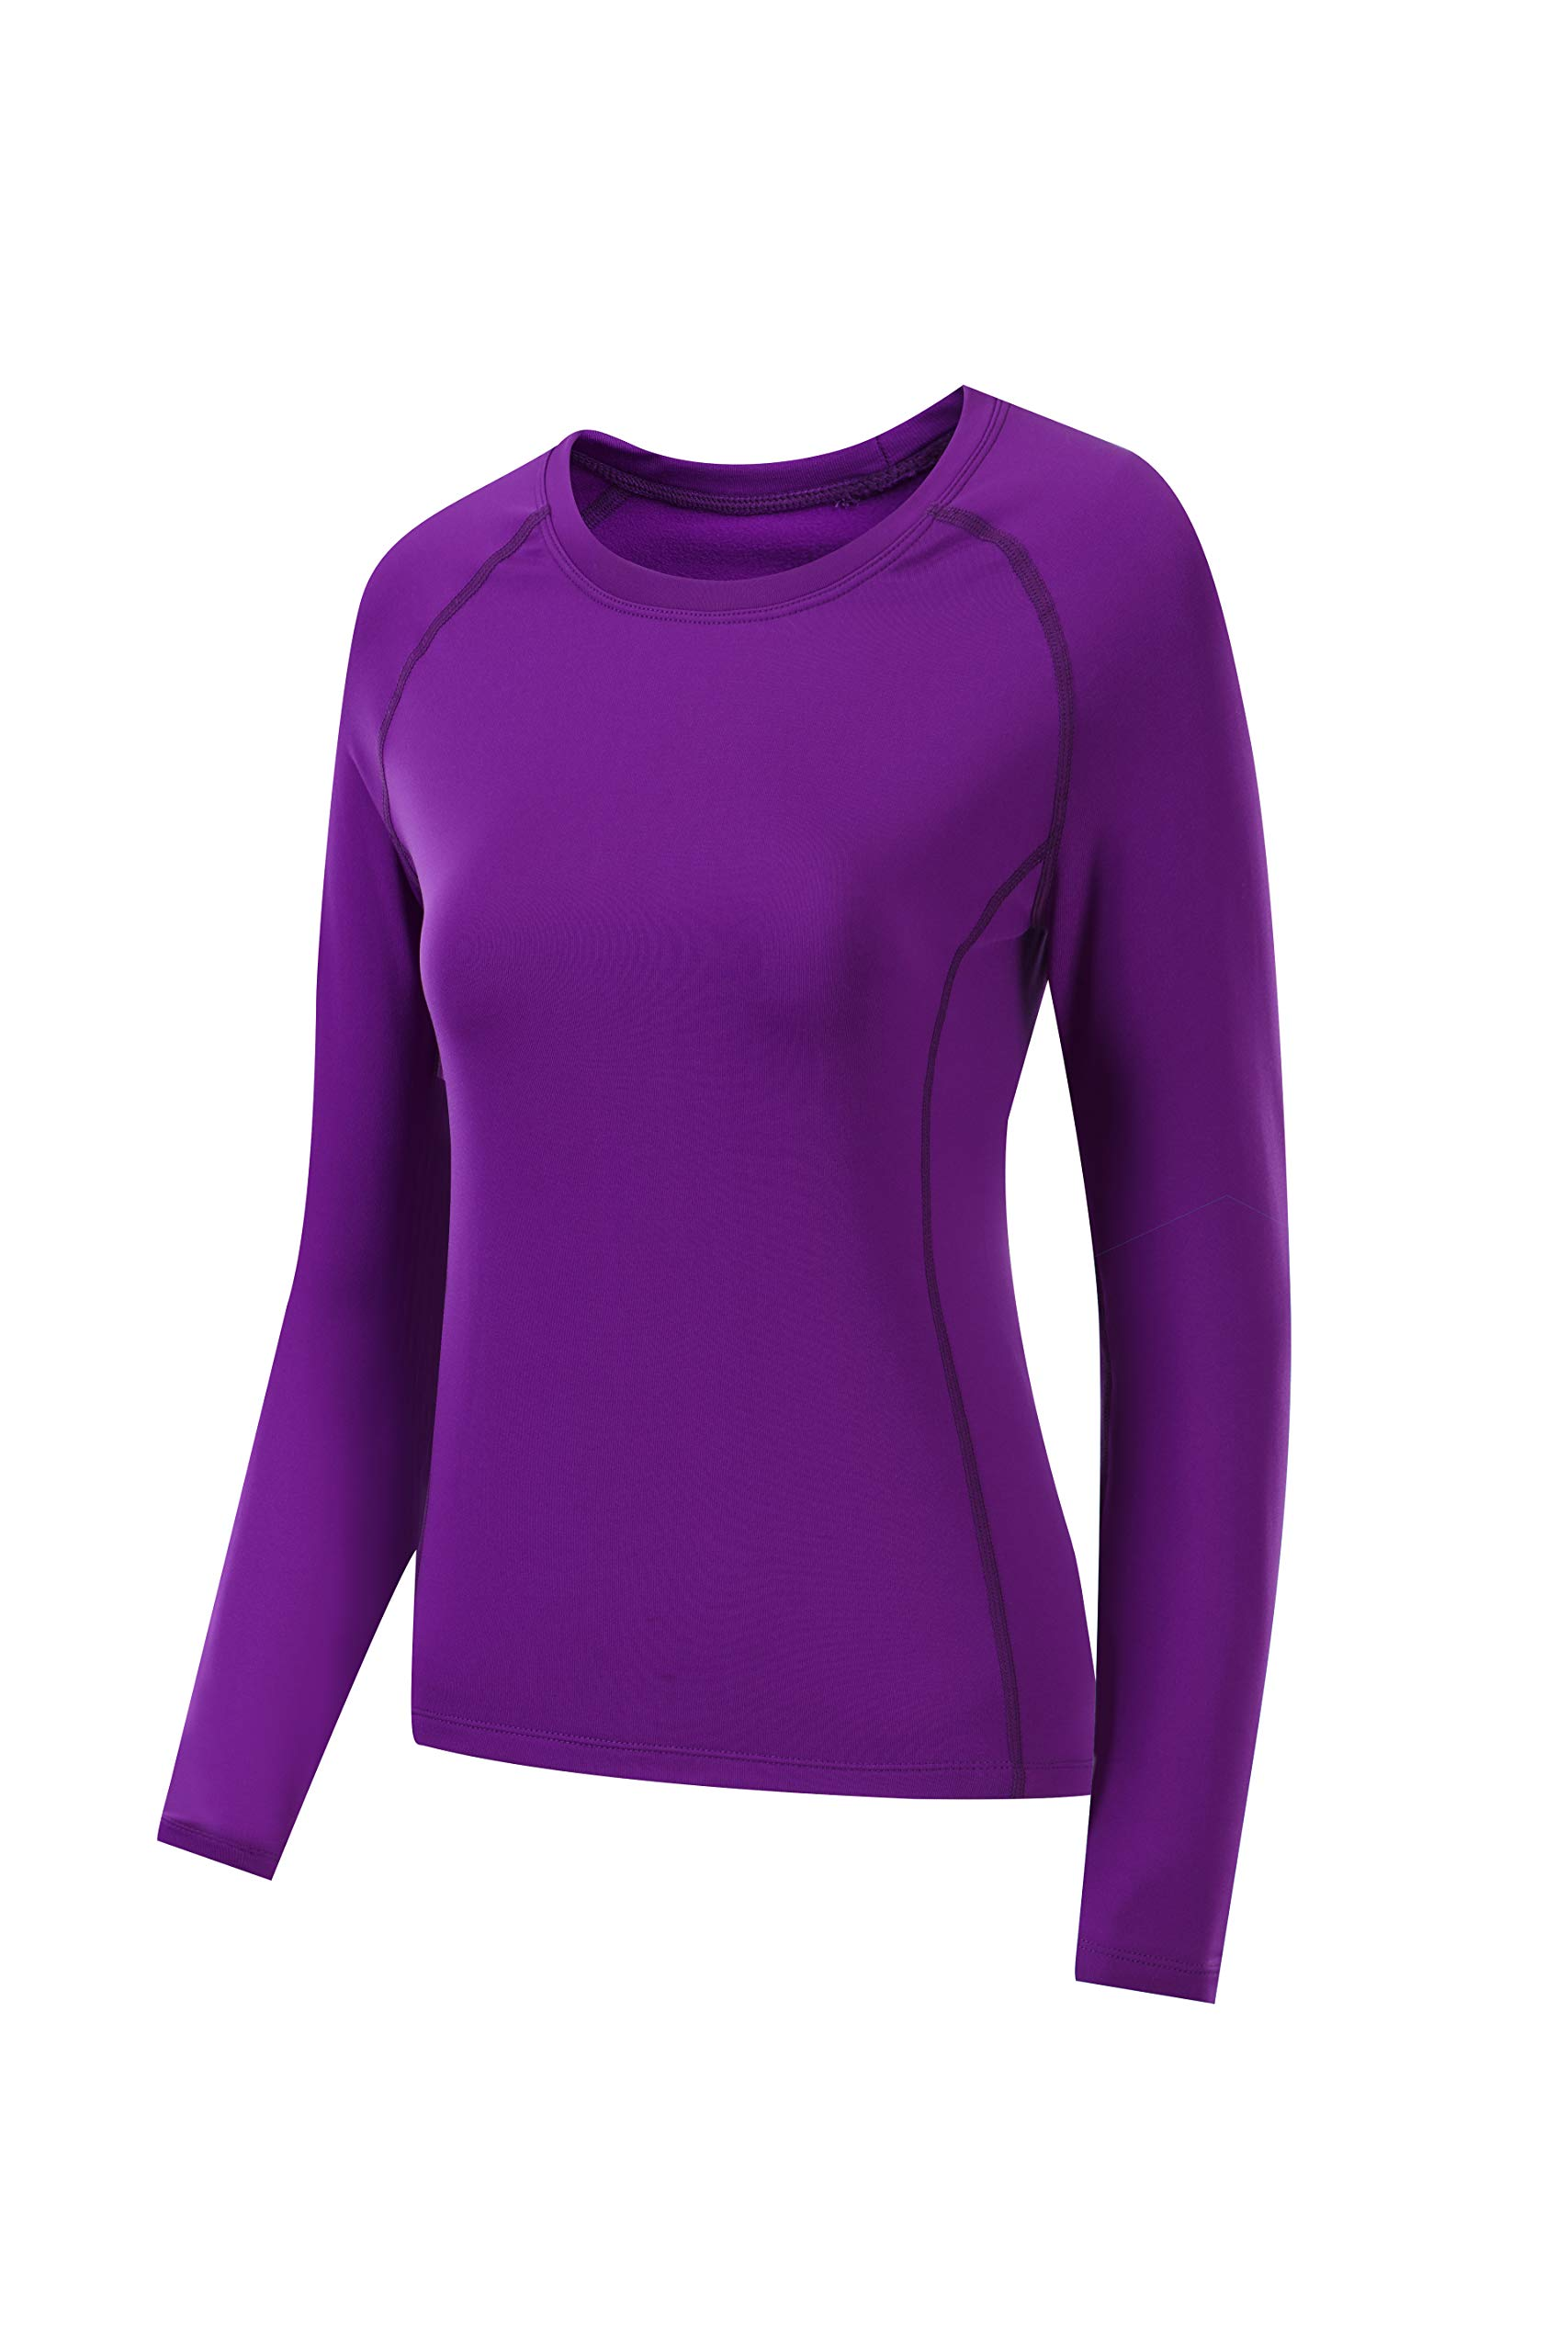 Nooz Women's Dry Fit Athletic Fleece Lined Thermal Compression Long Sleeve T Shirt